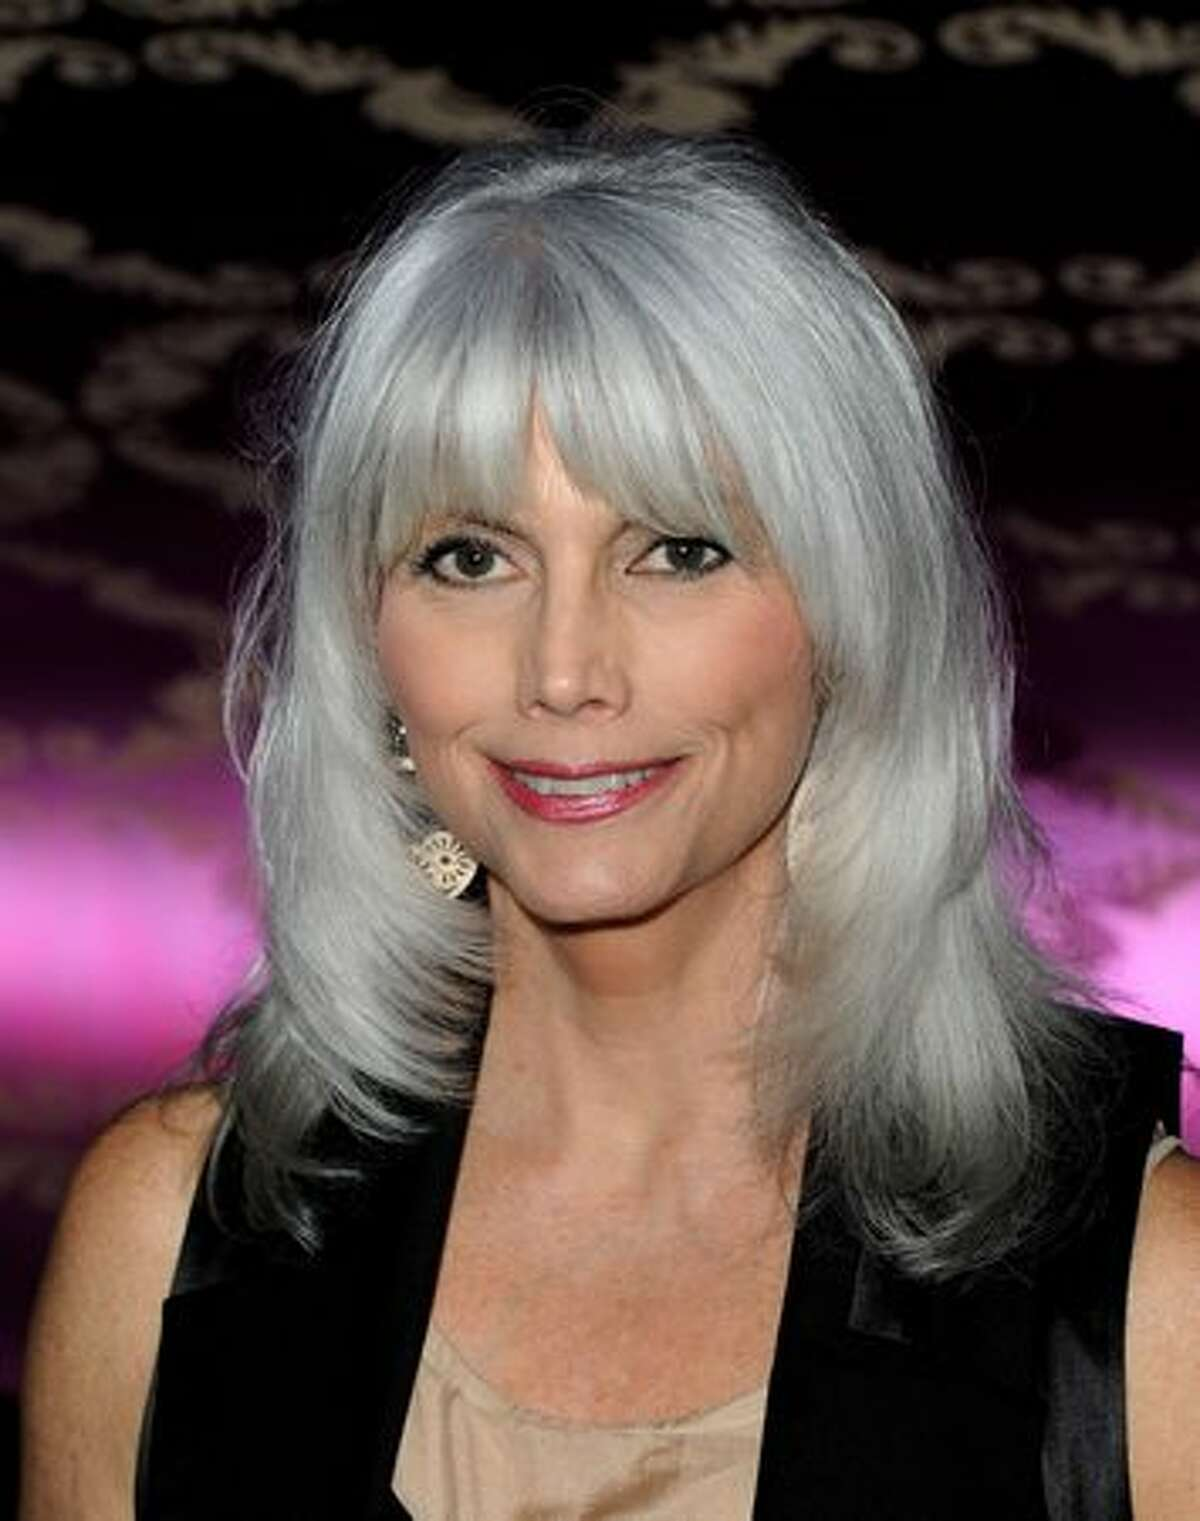 Singer/songwriter Emmylou Harris arrives at the Country Music Hall of Fame & Museum's